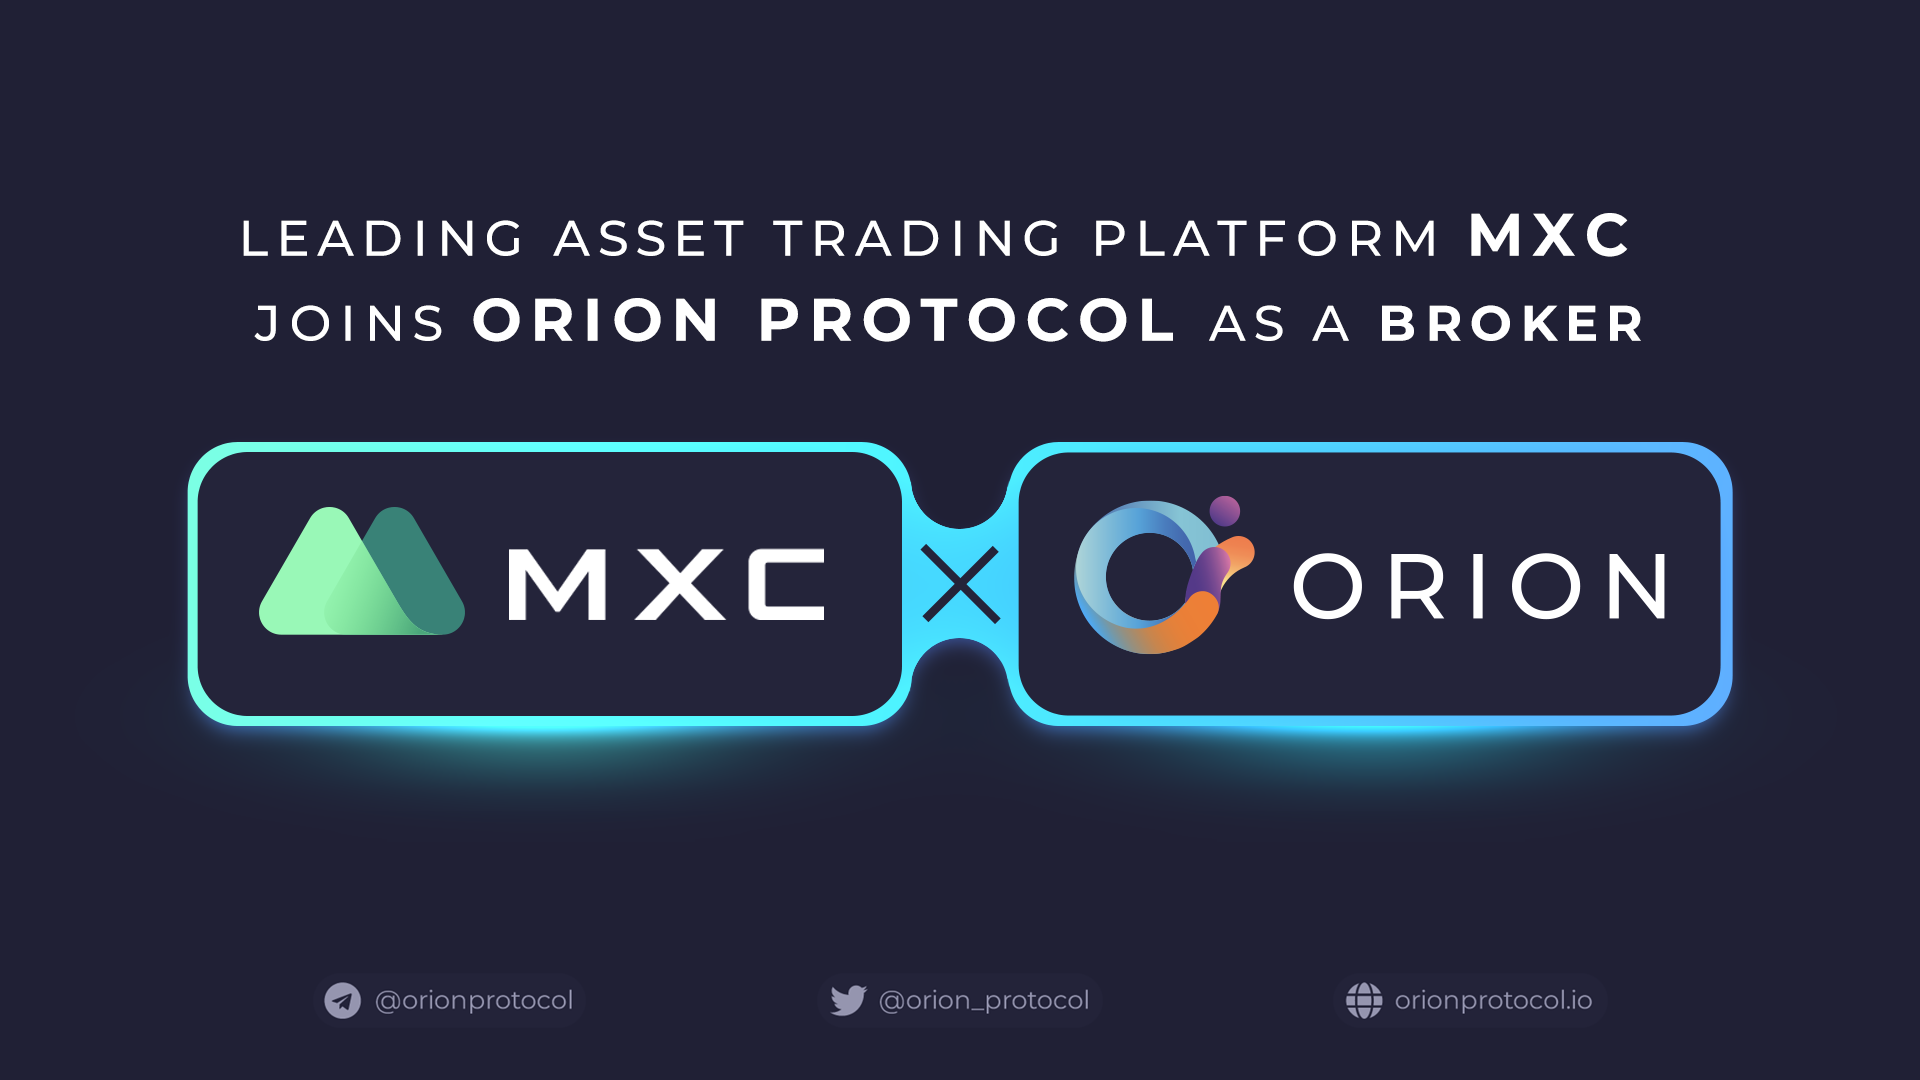 Orion Announces MXC as Founding Broker